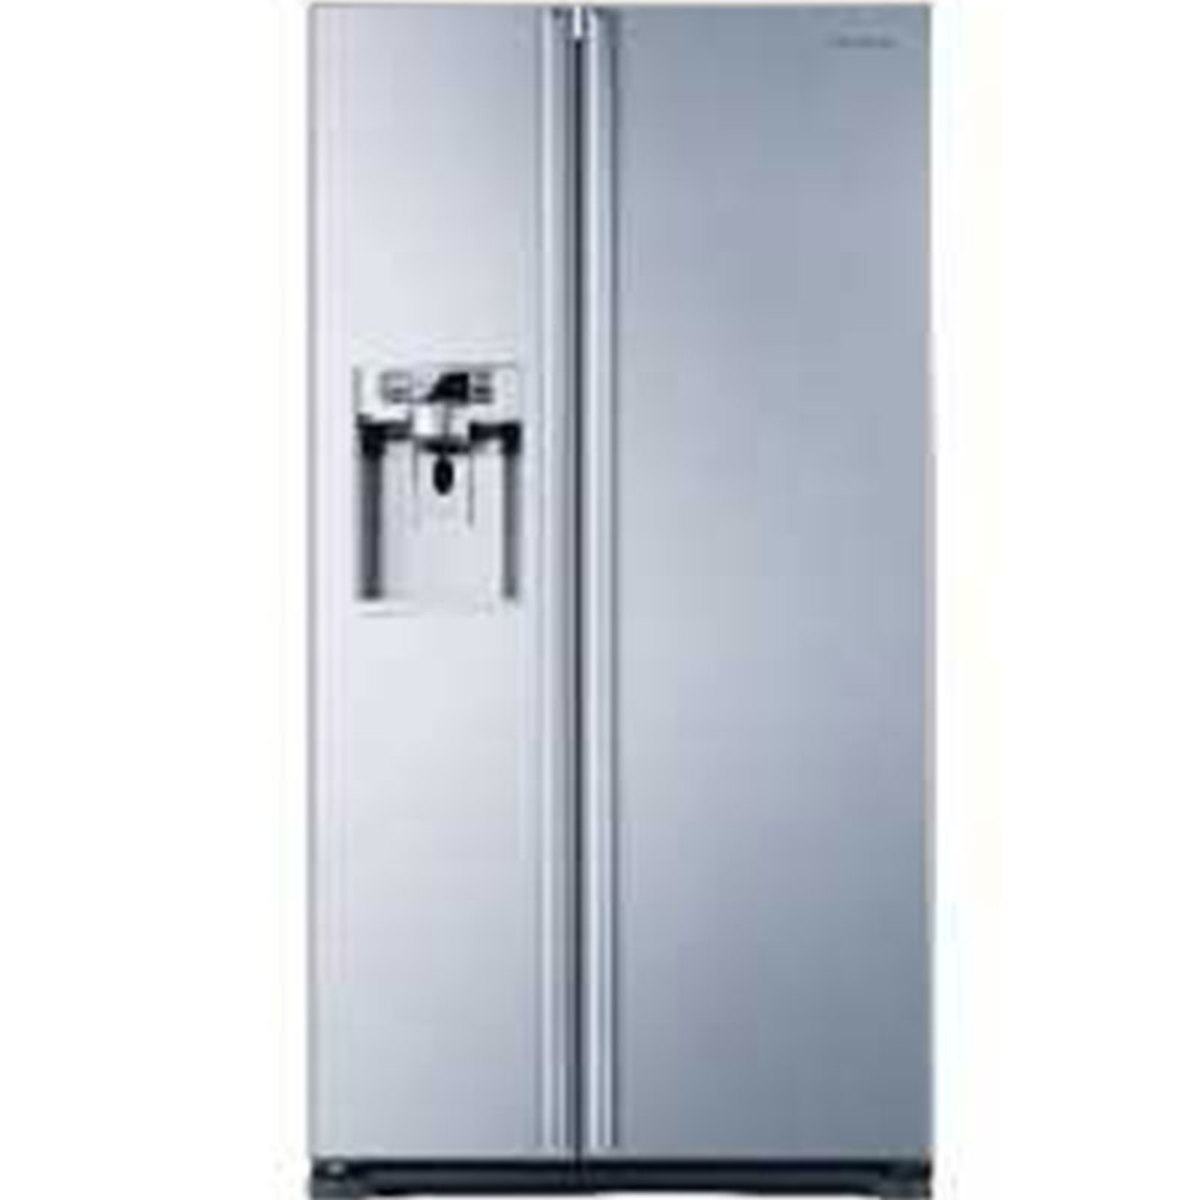 RS61681GDSR 620Litres Side-by-Side Refrigerator  Hong Kong Warranty Genuine Products